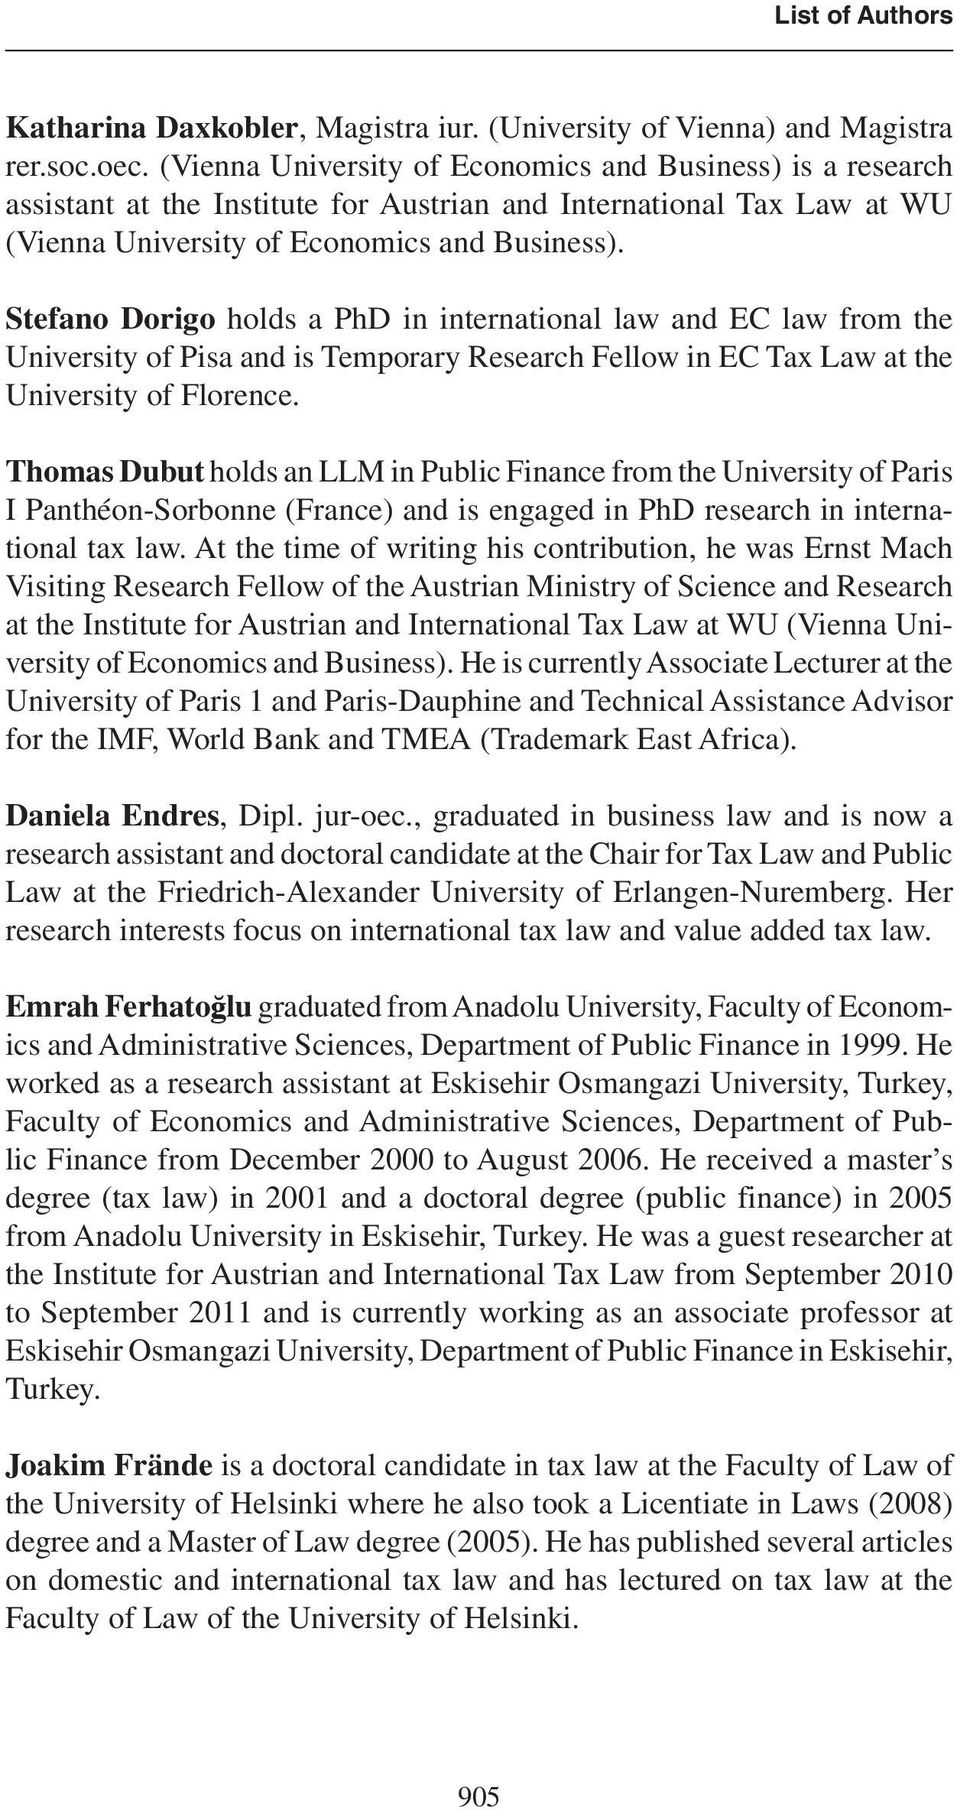 Stefano Dorigo holds a PhD in international law and EC law from the University of Pisa and is Temporary Research Fellow in EC Tax Law at the University of Florence.